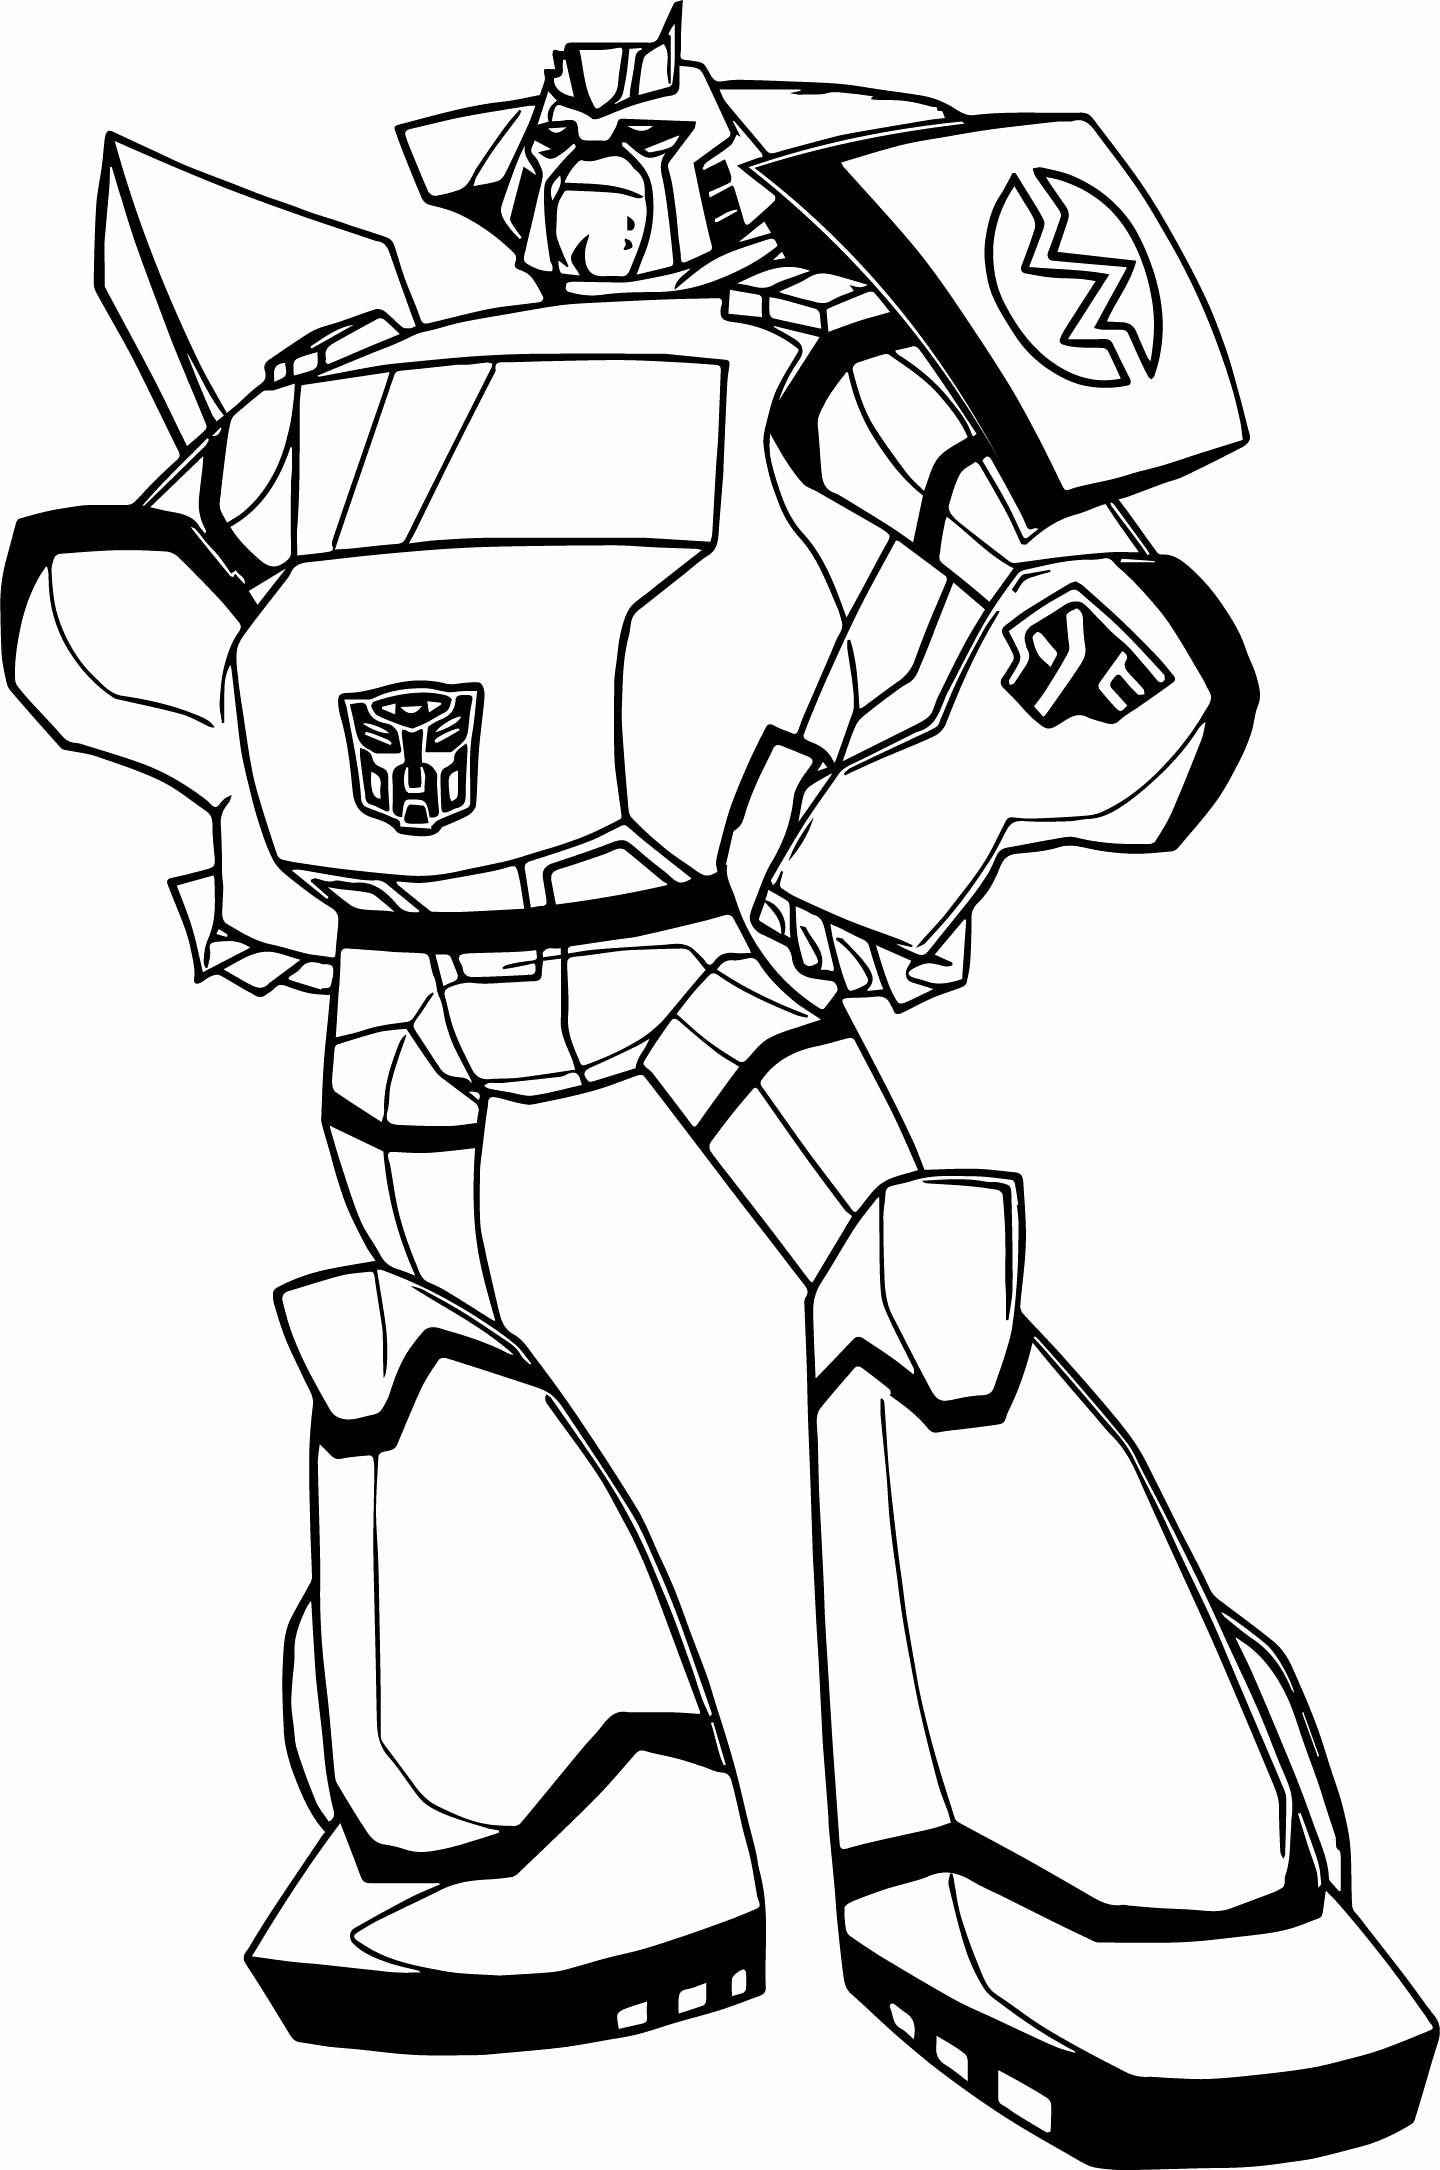 Transformers Bumblebee Coloring Page Awesome Coloring Pages Pin Wecoloringpage Bumblebee Transfor In 2020 Transformers Coloring Pages Bee Coloring Pages Coloring Pages